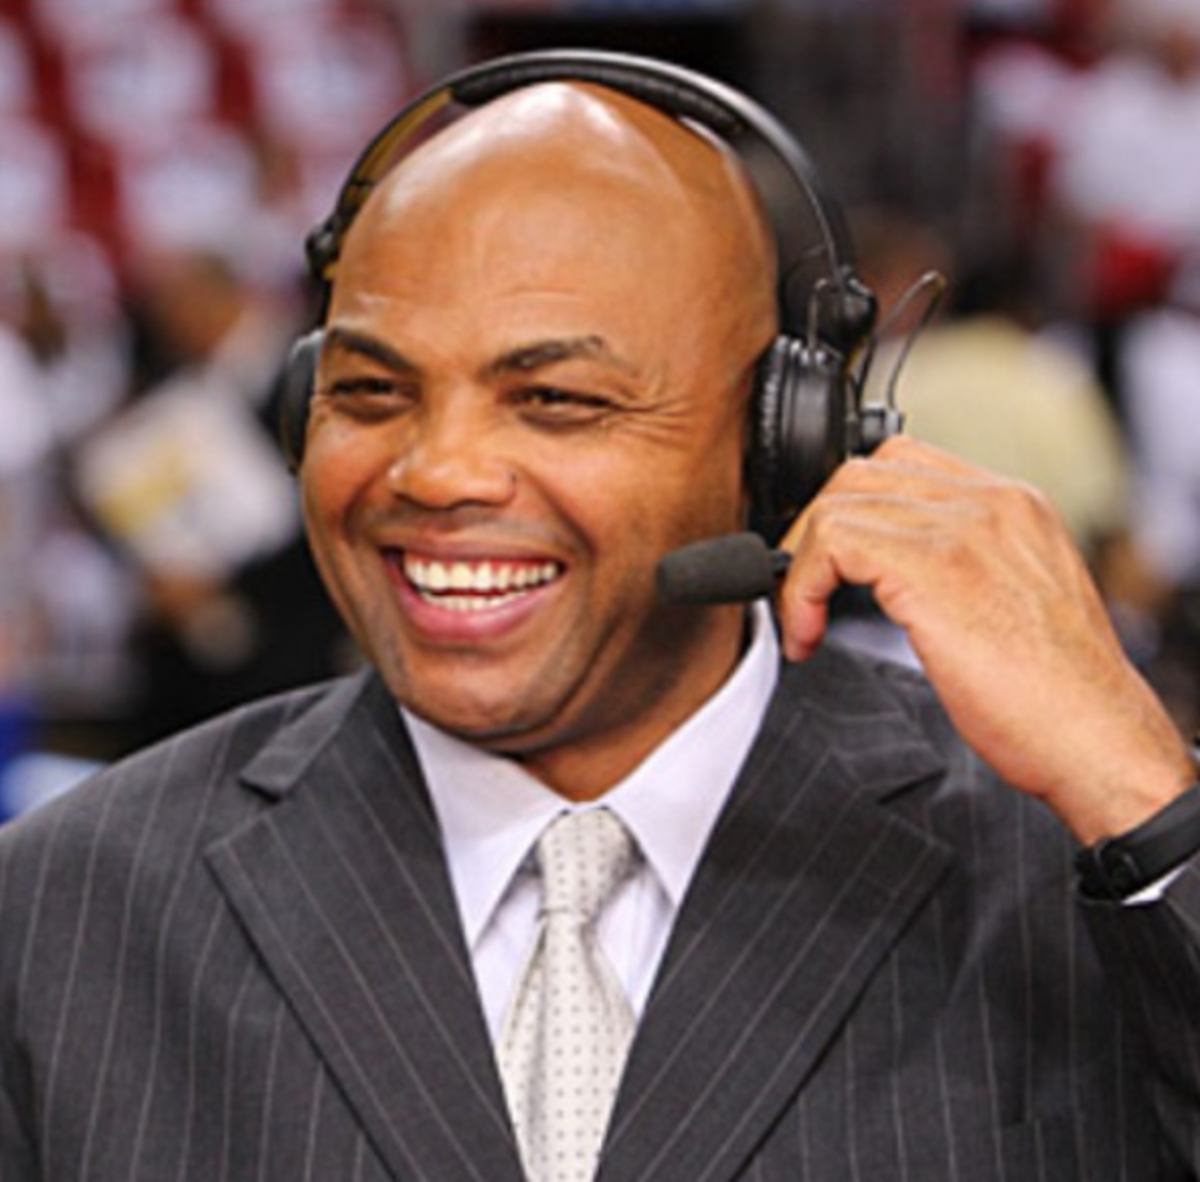 Sir Charles enjoyed being A Weight Watcher.